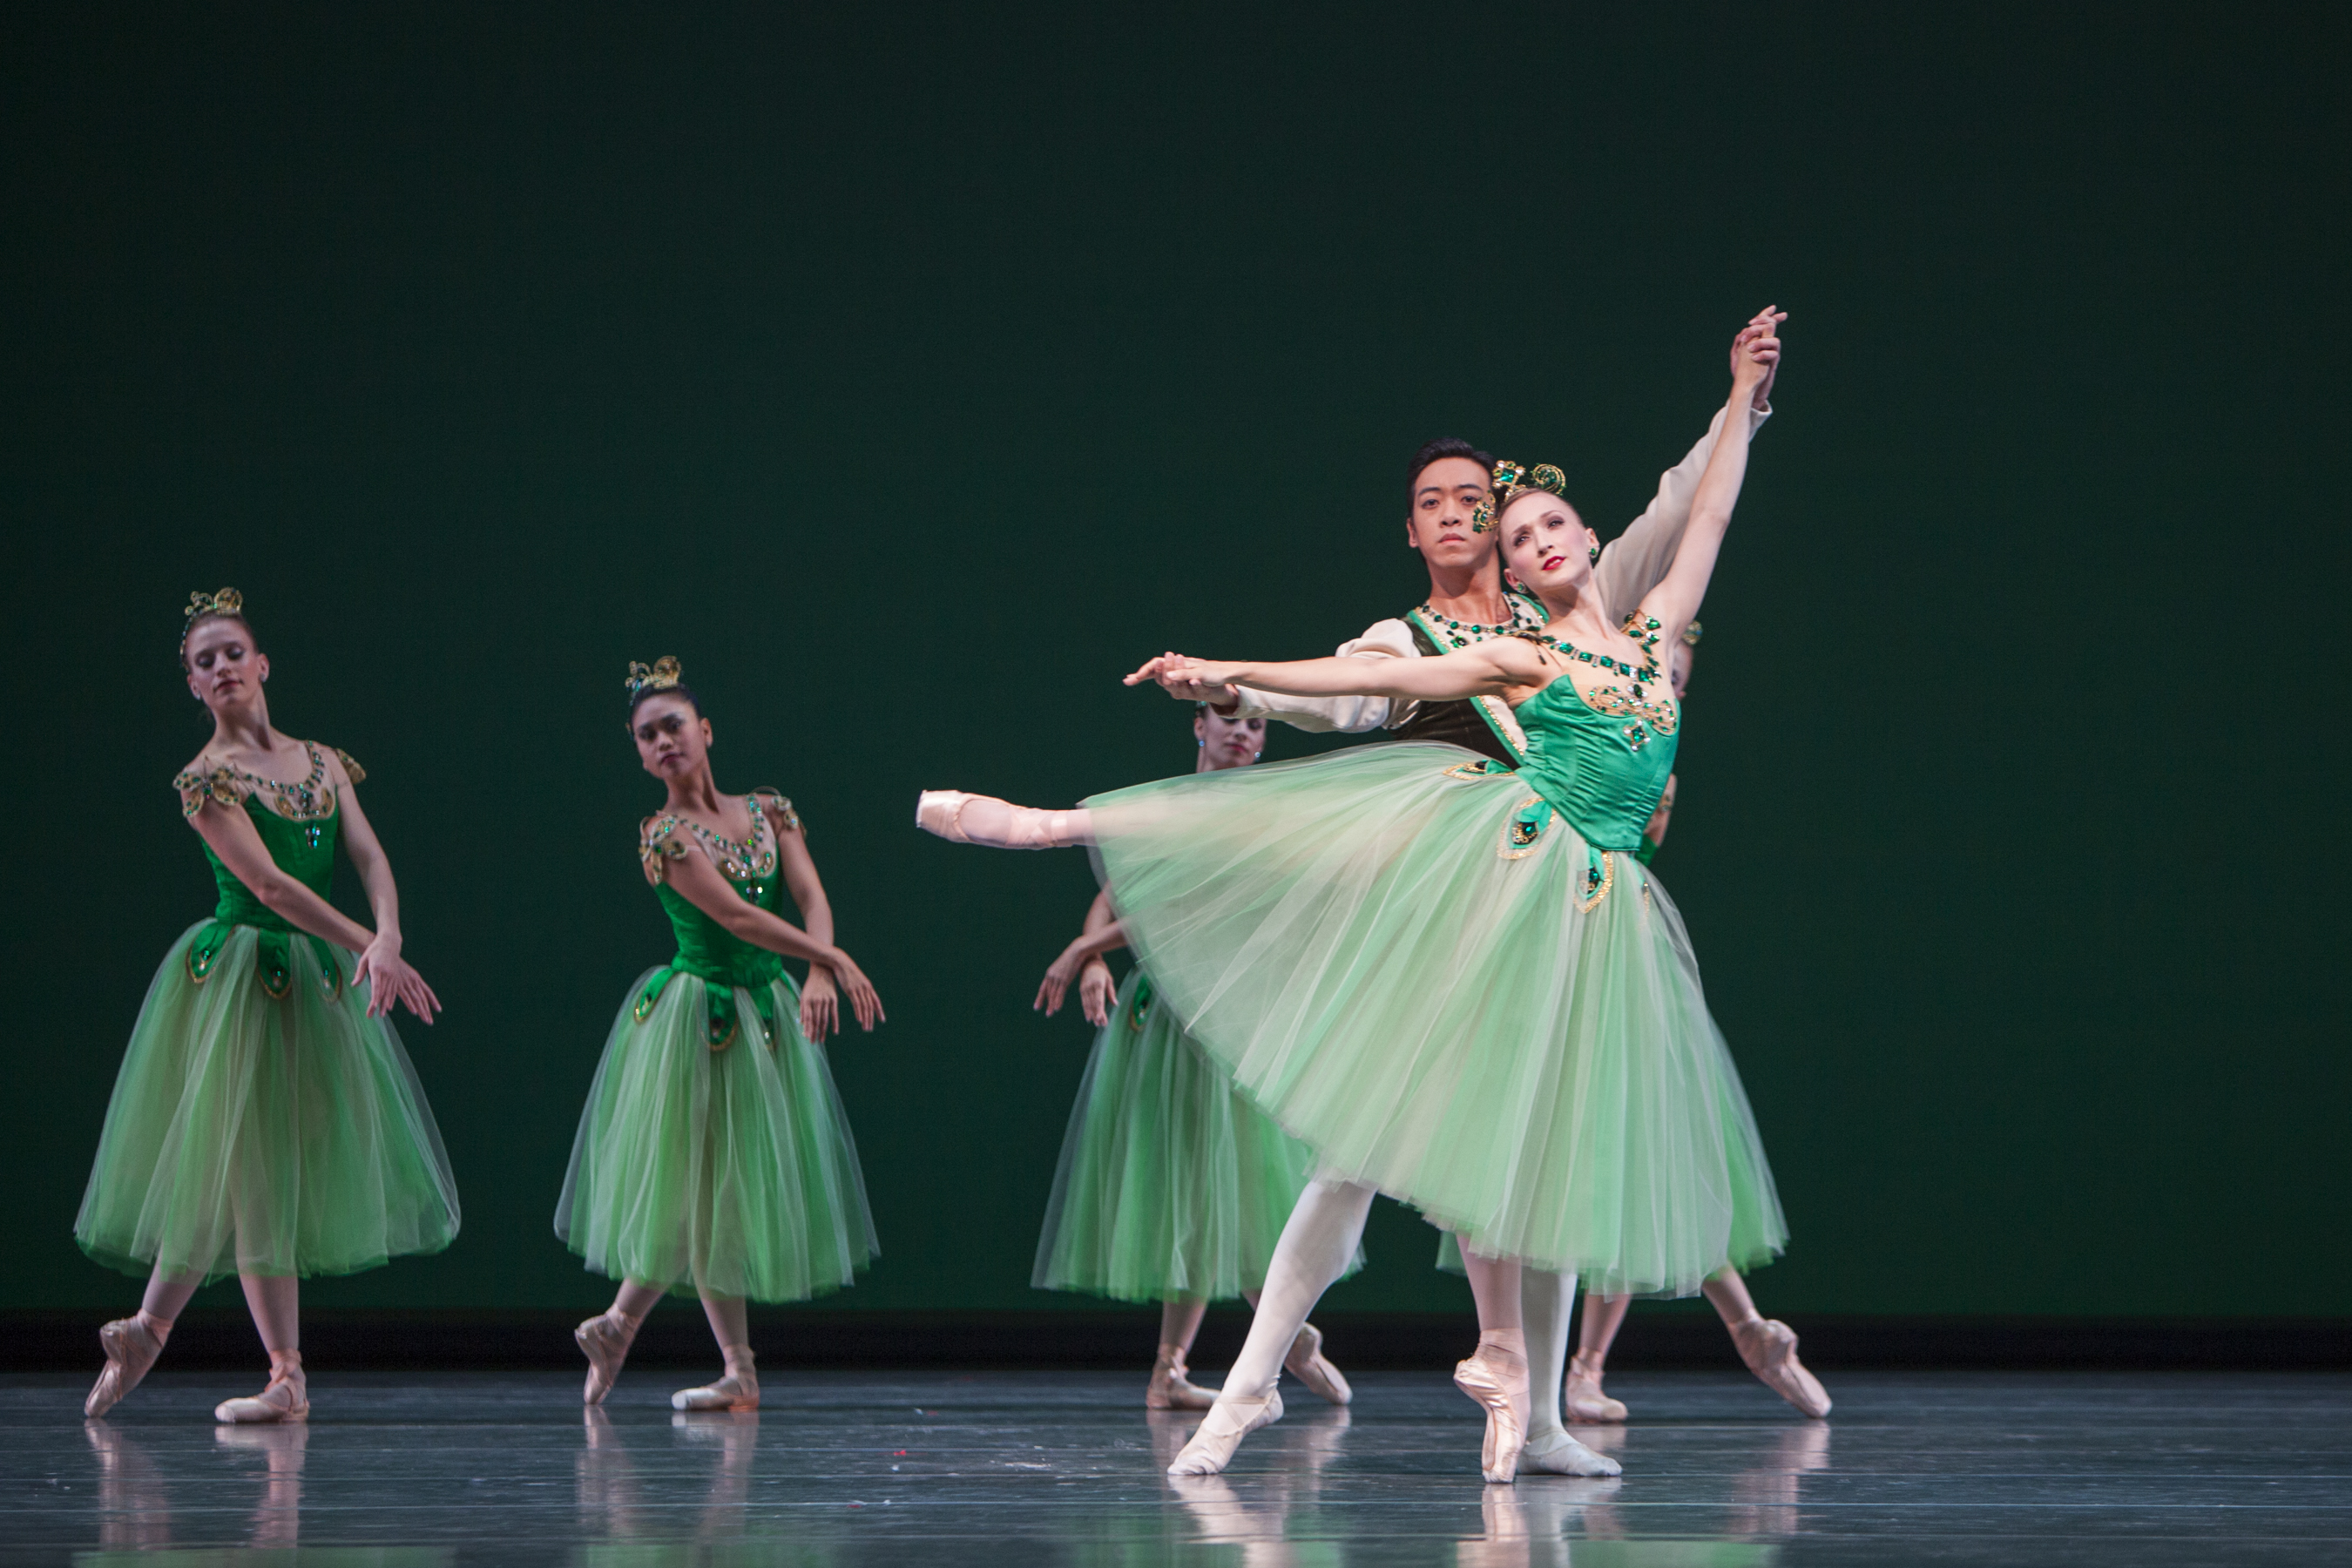 Pacific Northwest Ballet soloists William Lin-Yee and Elizabeth Murphy with company dancers in Emeralds Photo by Angela Sterling